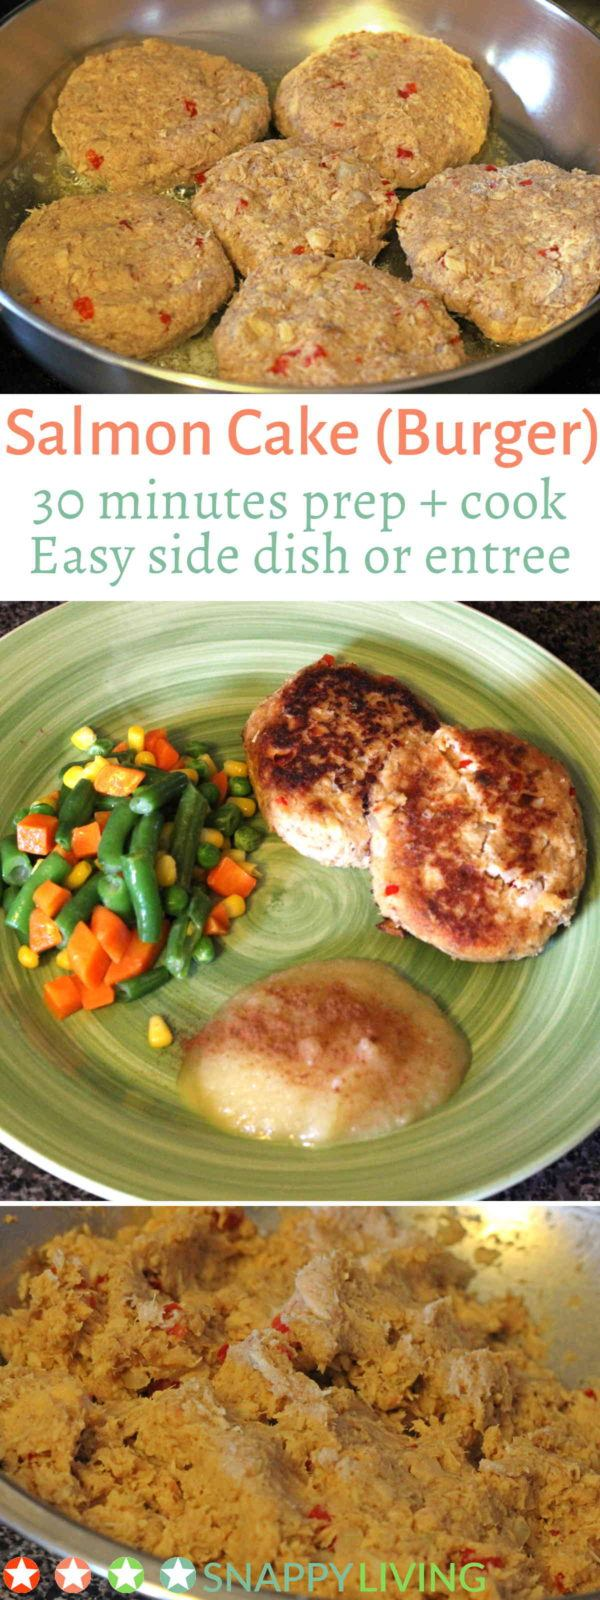 This simple salmon cake recipe is very quick to make, maybe 15 minutes prep time and 10 minutes cook time. While the salmon cakes are cooking, you can cook some quick side dishes, and you've got a quick, easy meal that's filling.